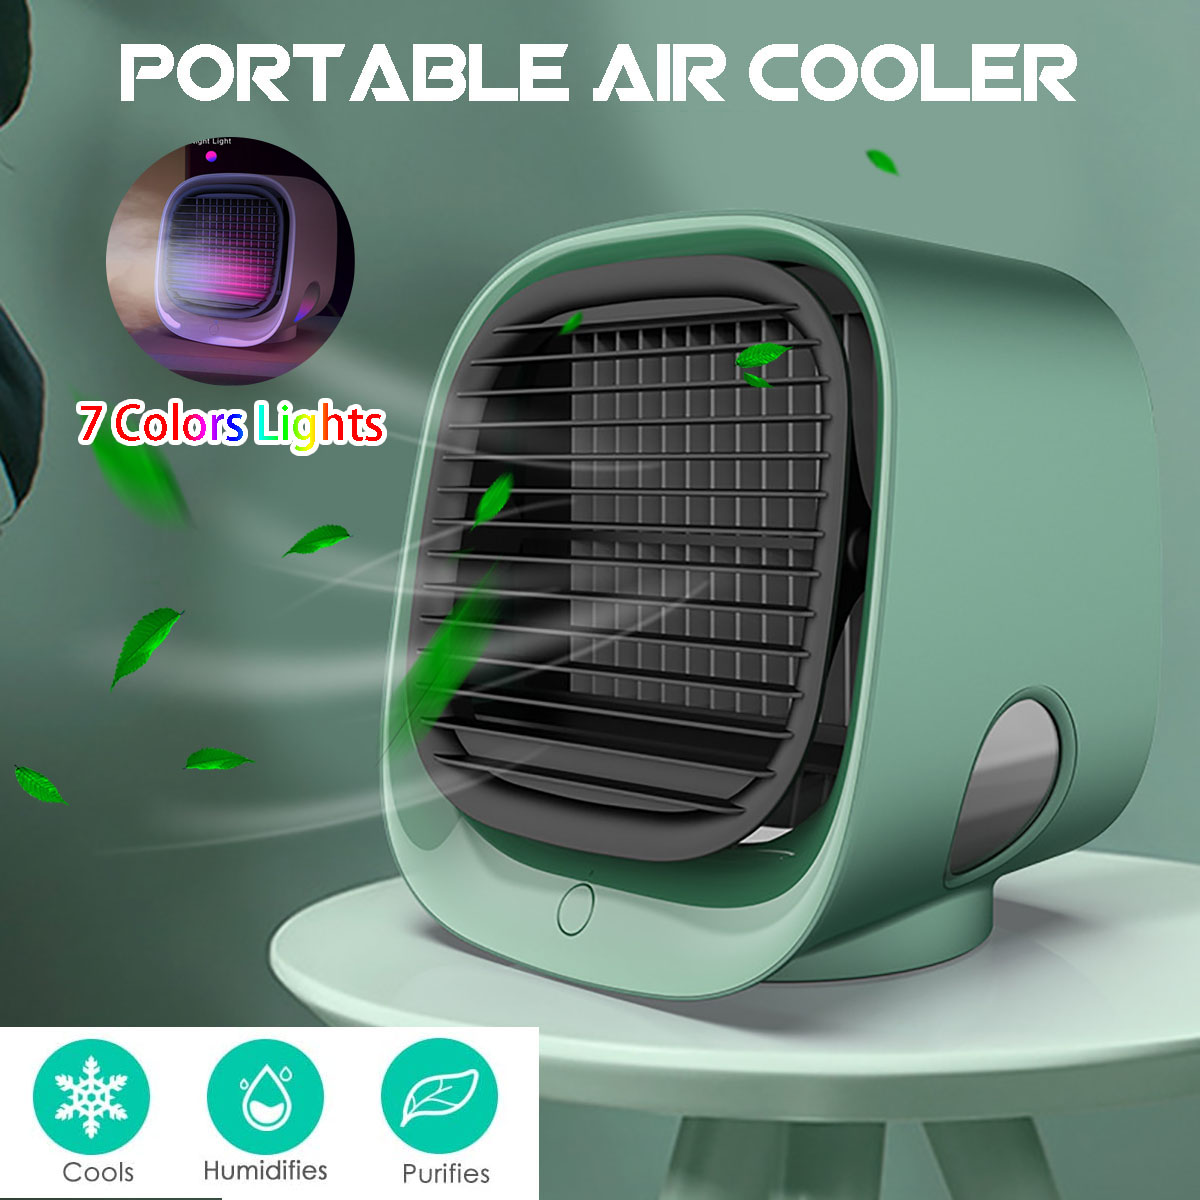 Mini Portable Air Conditioner Multi-function Humidifier Purifier USB Desktop Air Cooler Fan With Water Tank Home 5V